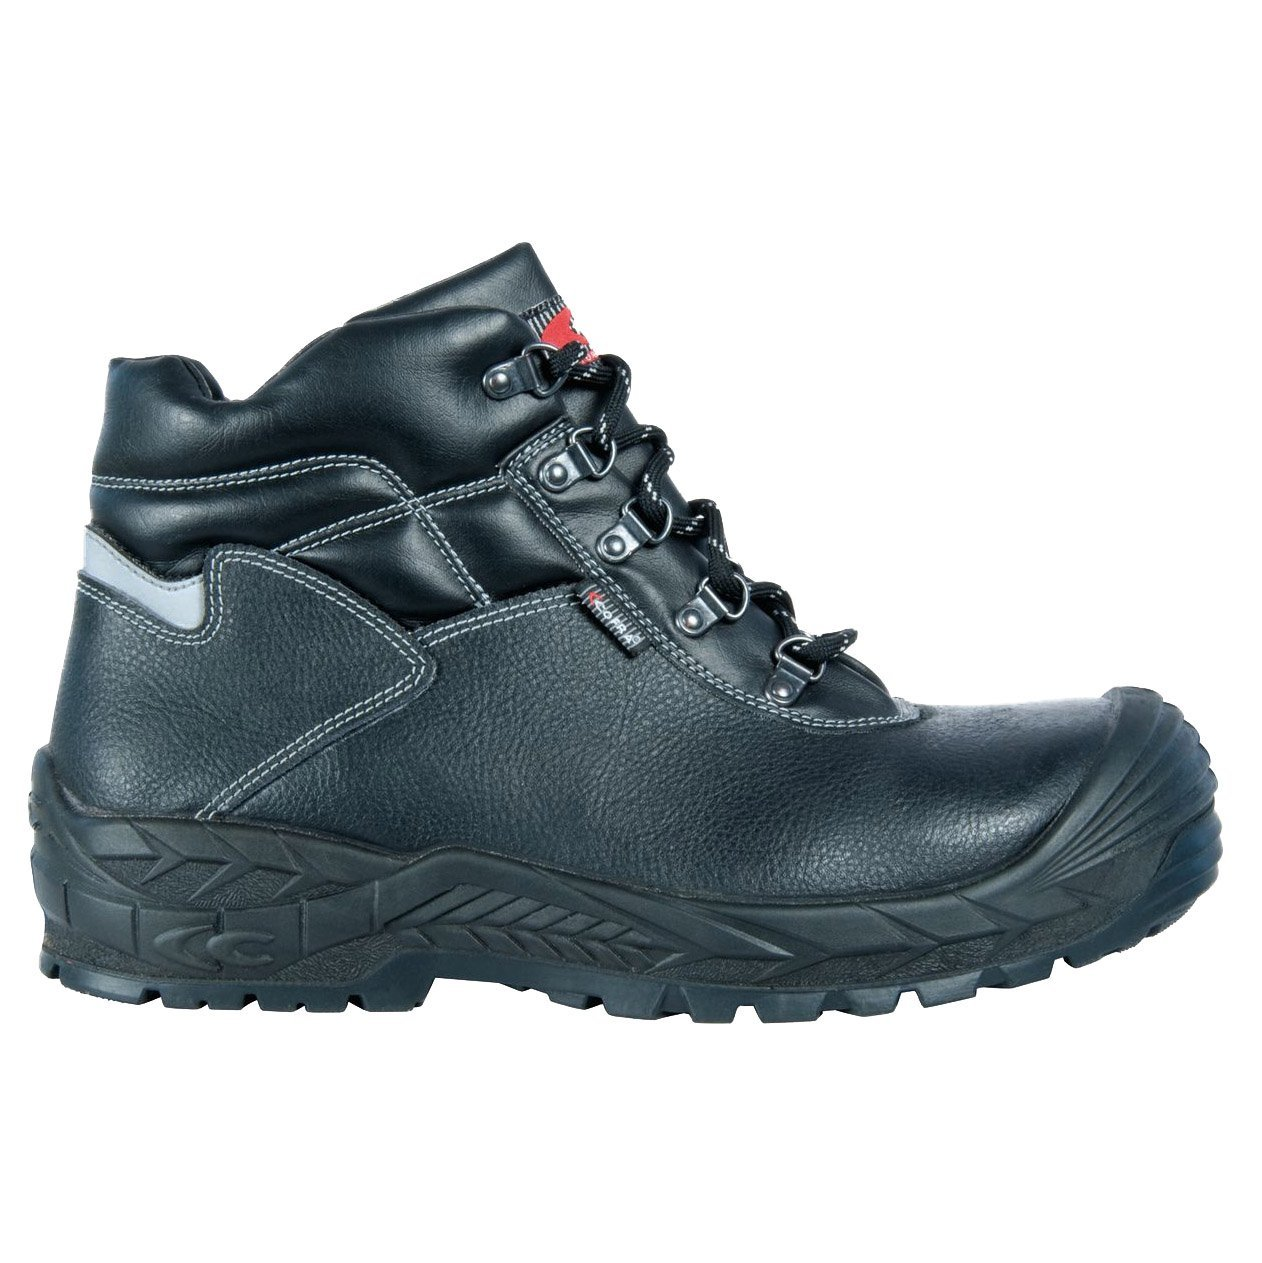 99088736387 Cofra Scaffold Black S3 SRC HRO Non metallic Safety Boots